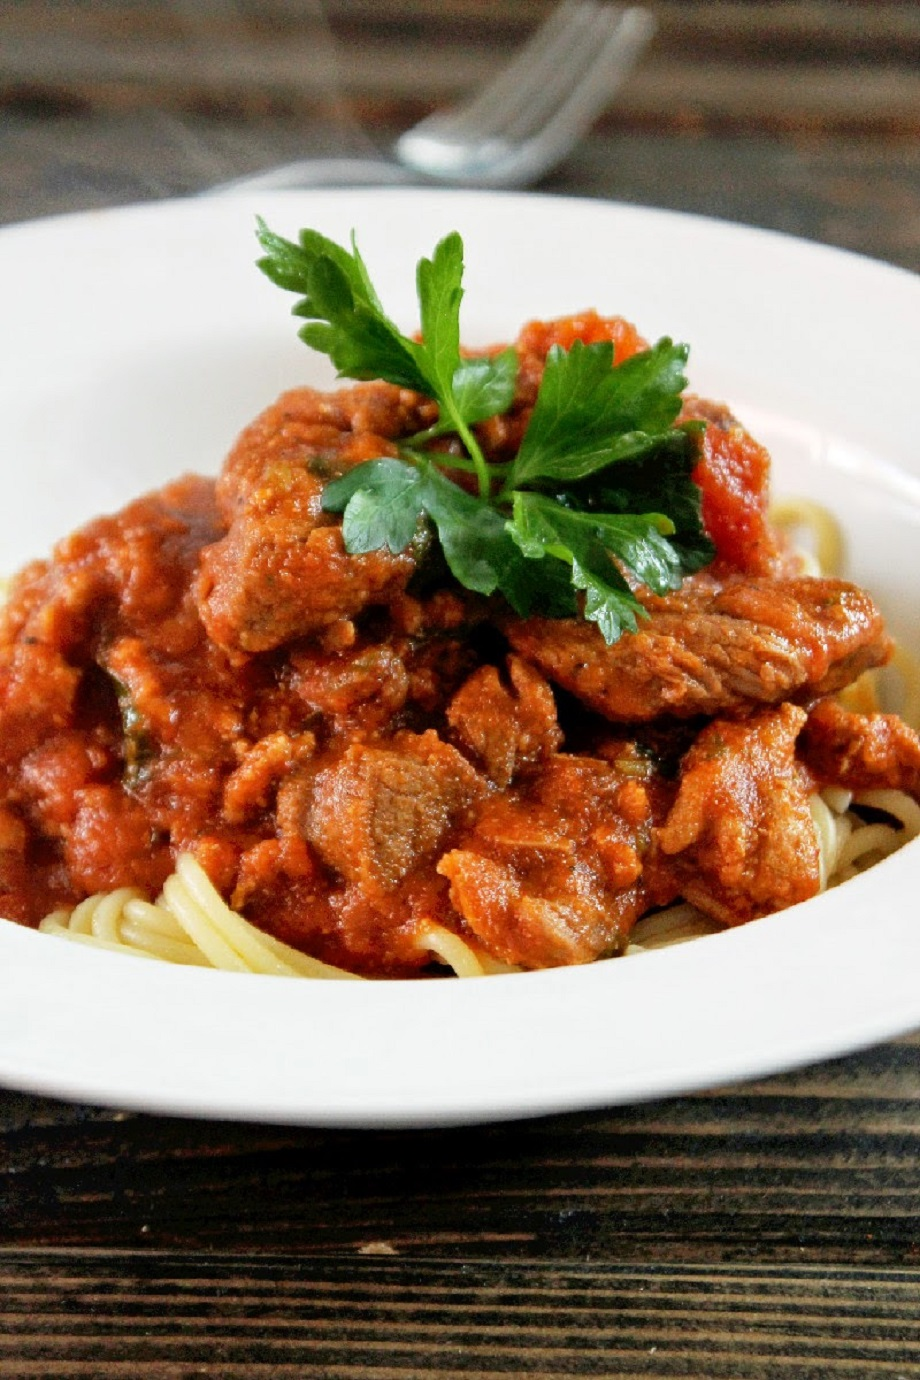 ... Sunday Ragu! You're probably wondering exactly what is Sunday Ragu